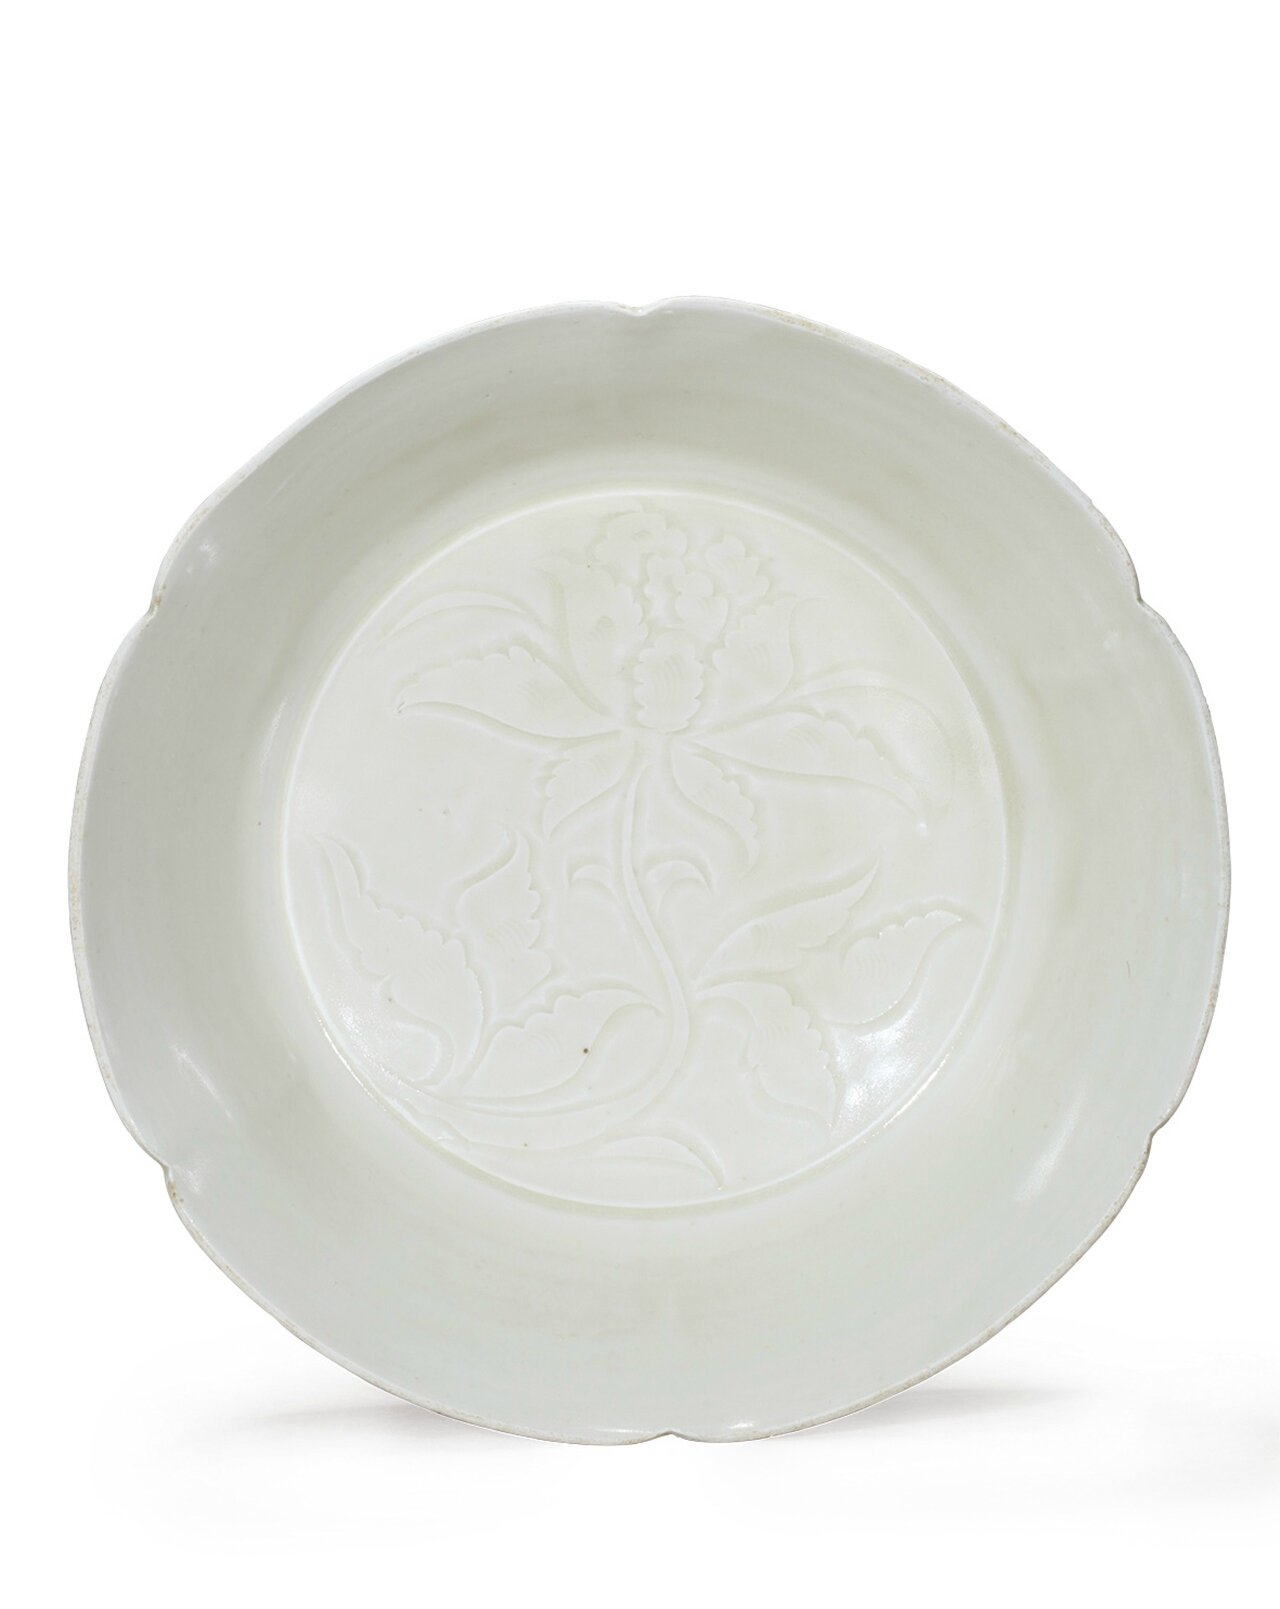 A rare Dingyao white glazed floral bowl carved with hibiscus pattern, Song Dynasty